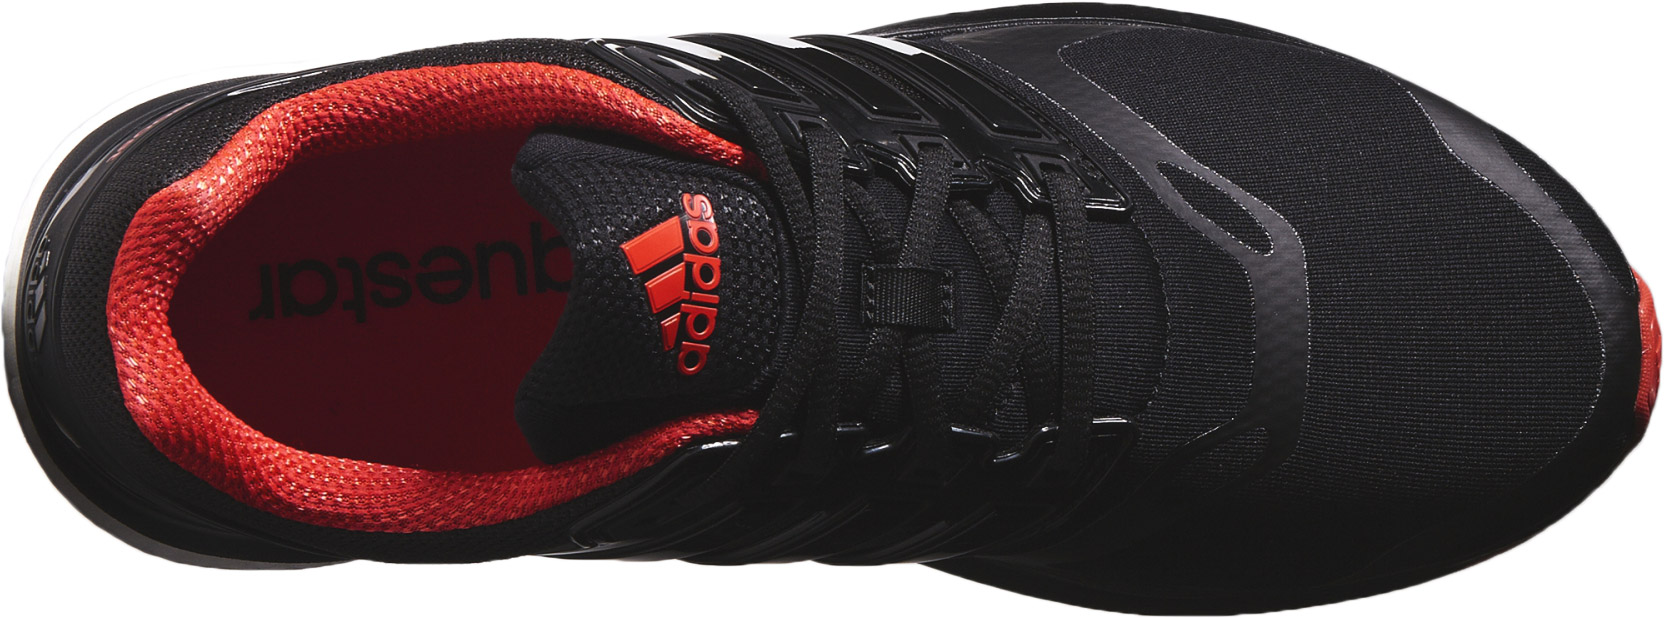 adidas QUESTAR BOOST TF M | sportisimo.pl